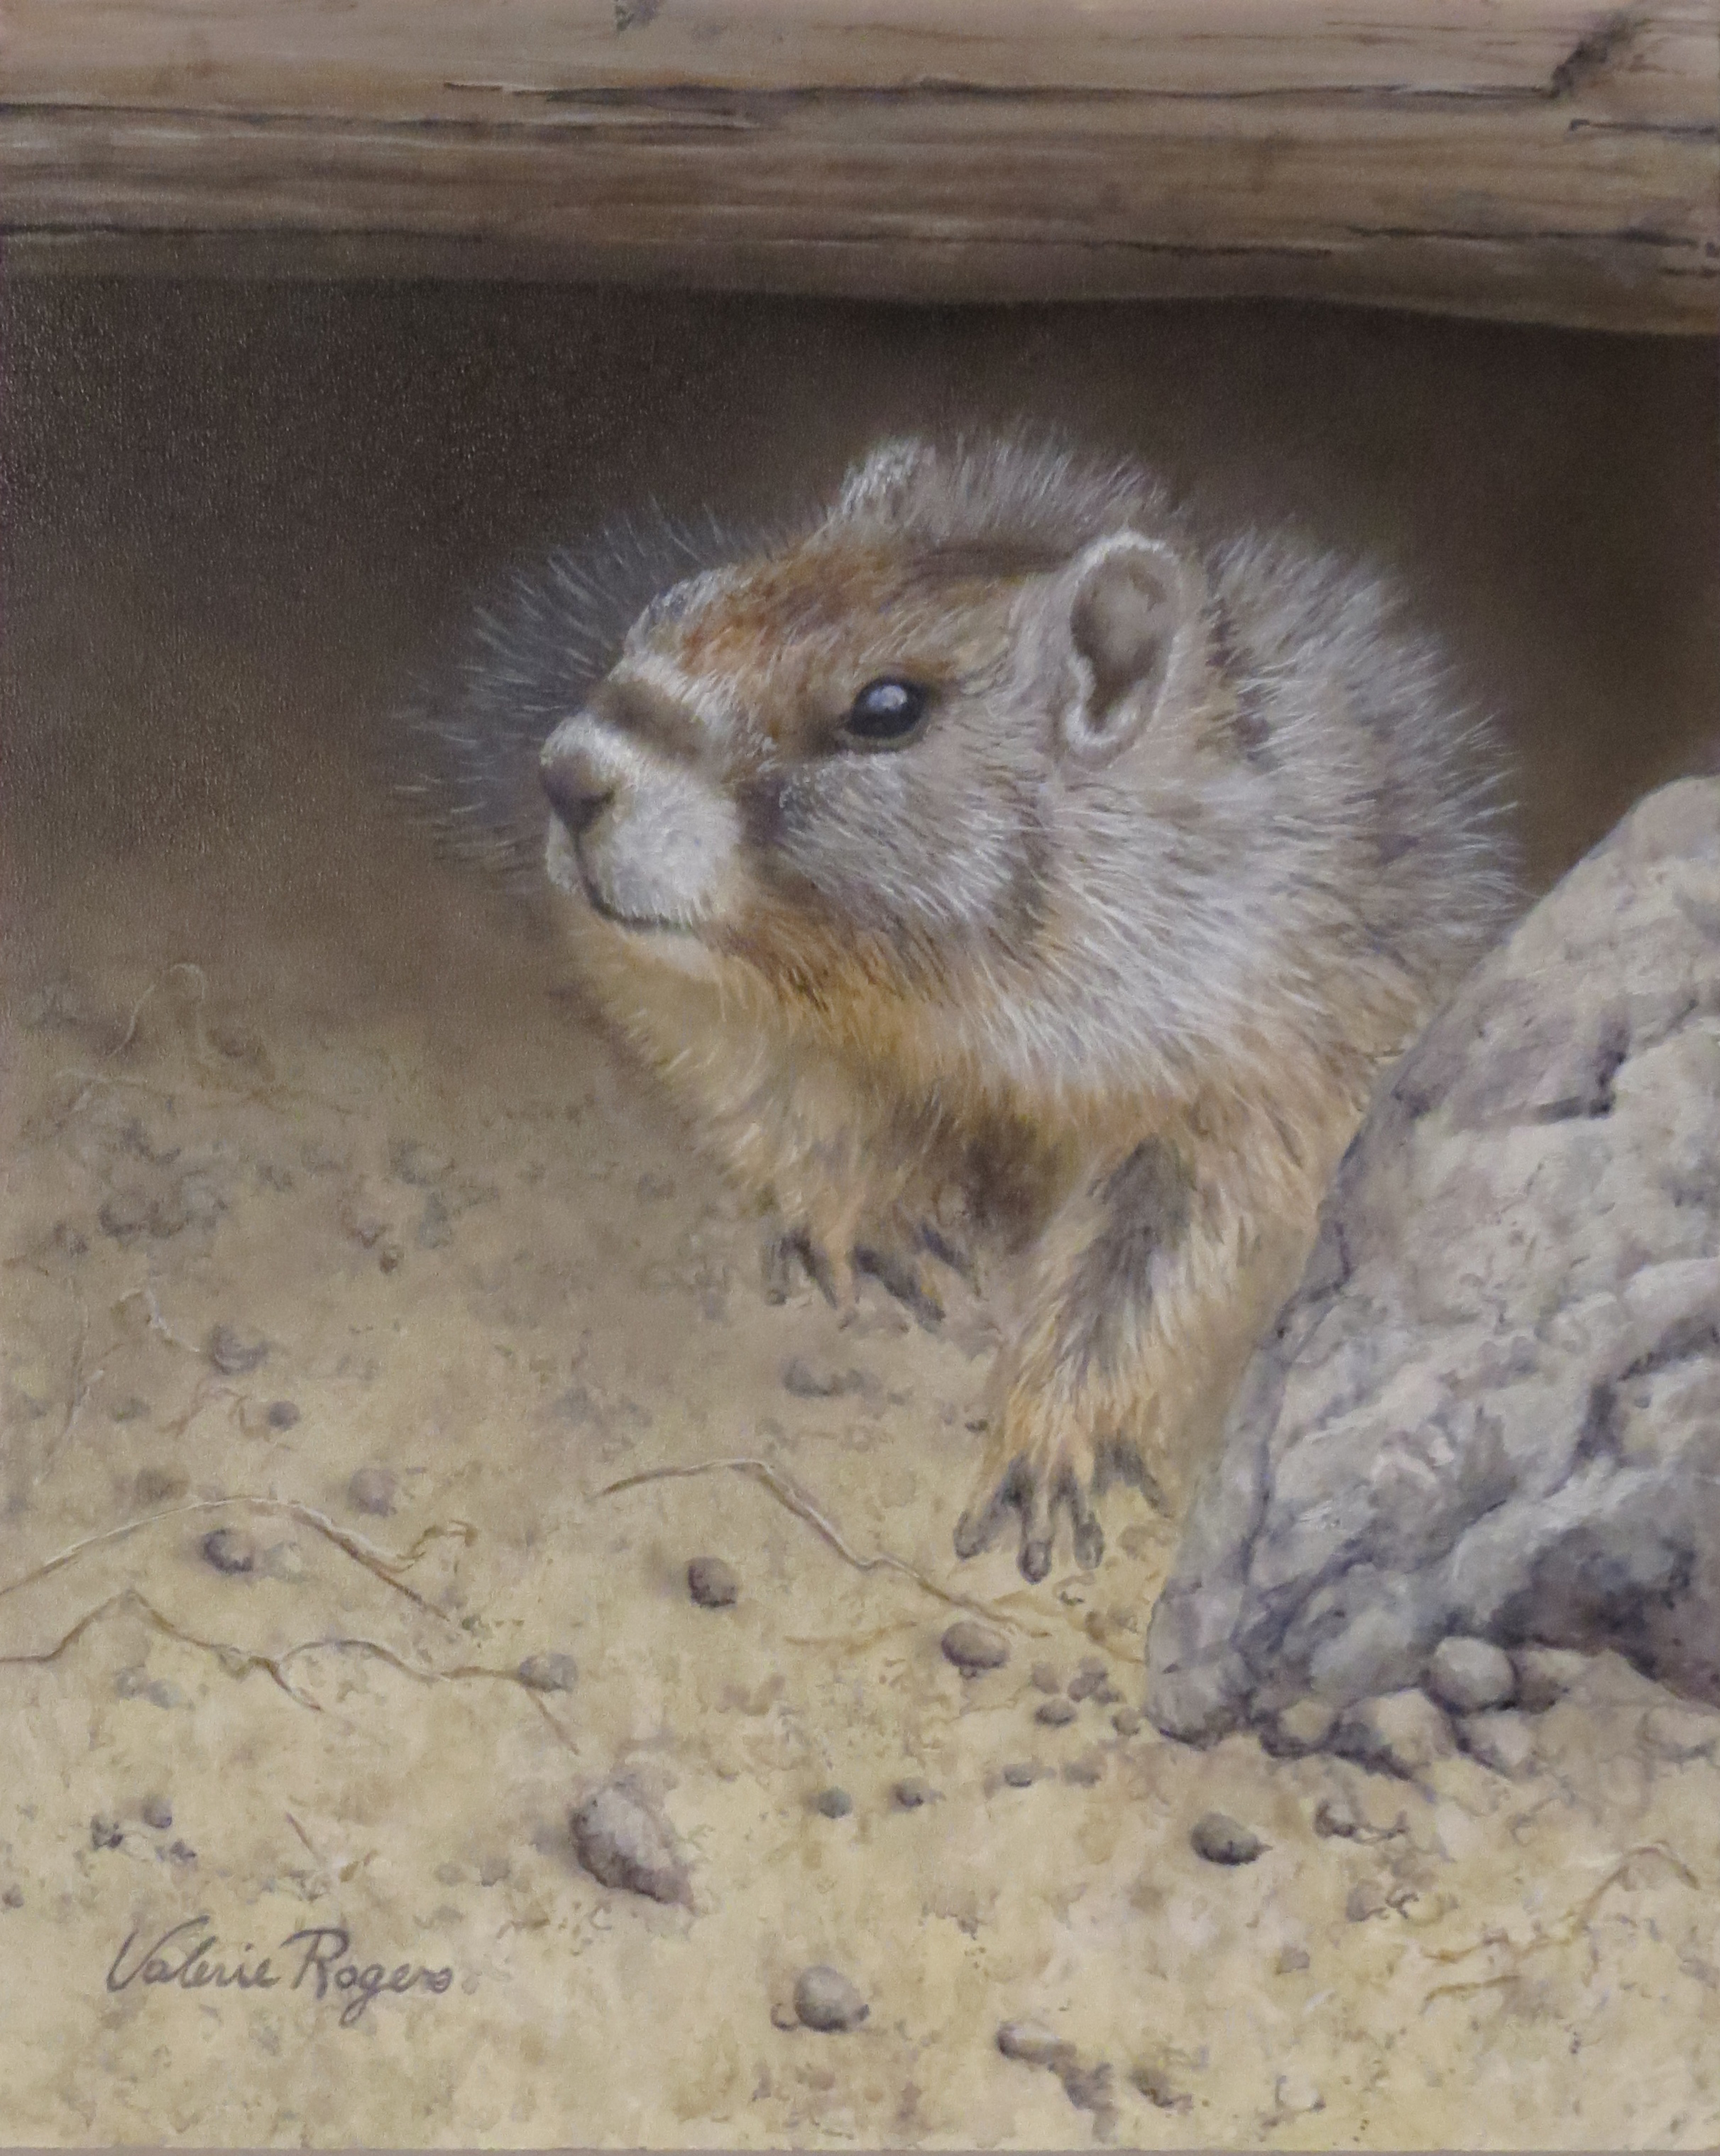 painting of marmot by Valerie Rogers